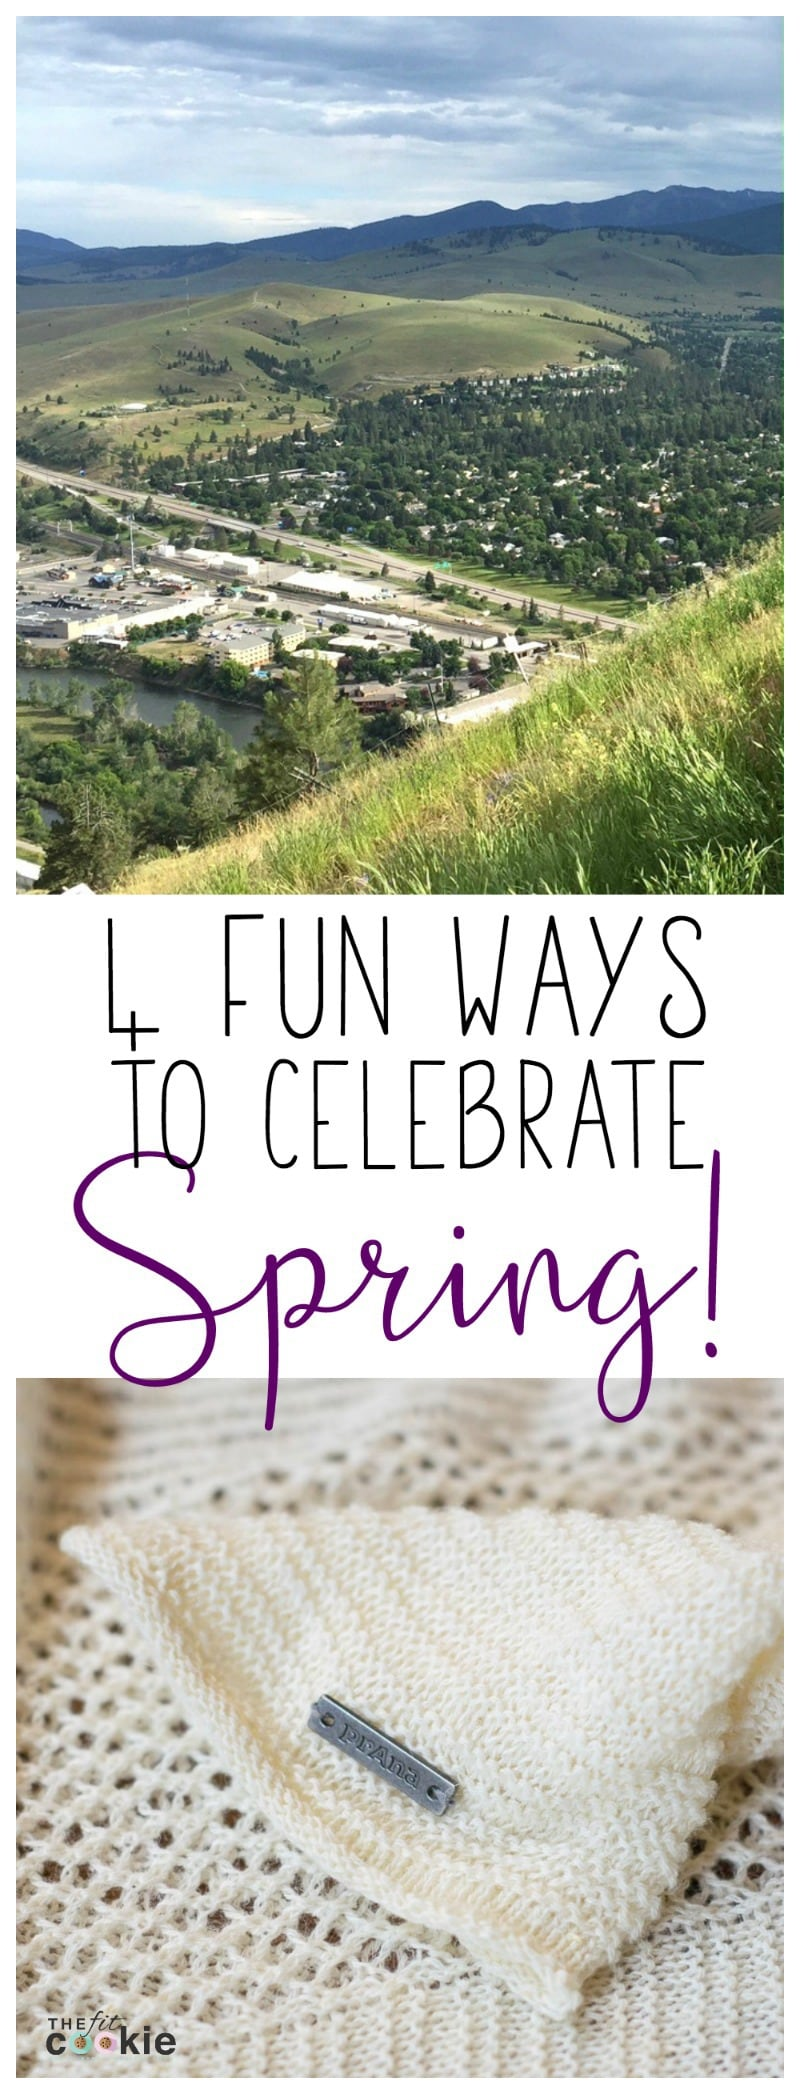 The first day of Spring is right around the corner! Here are 4 fun ways to celebrate Spring (you'll love #4!) - @TheFitCookie #ad @prana @fitapproach #sweatpink